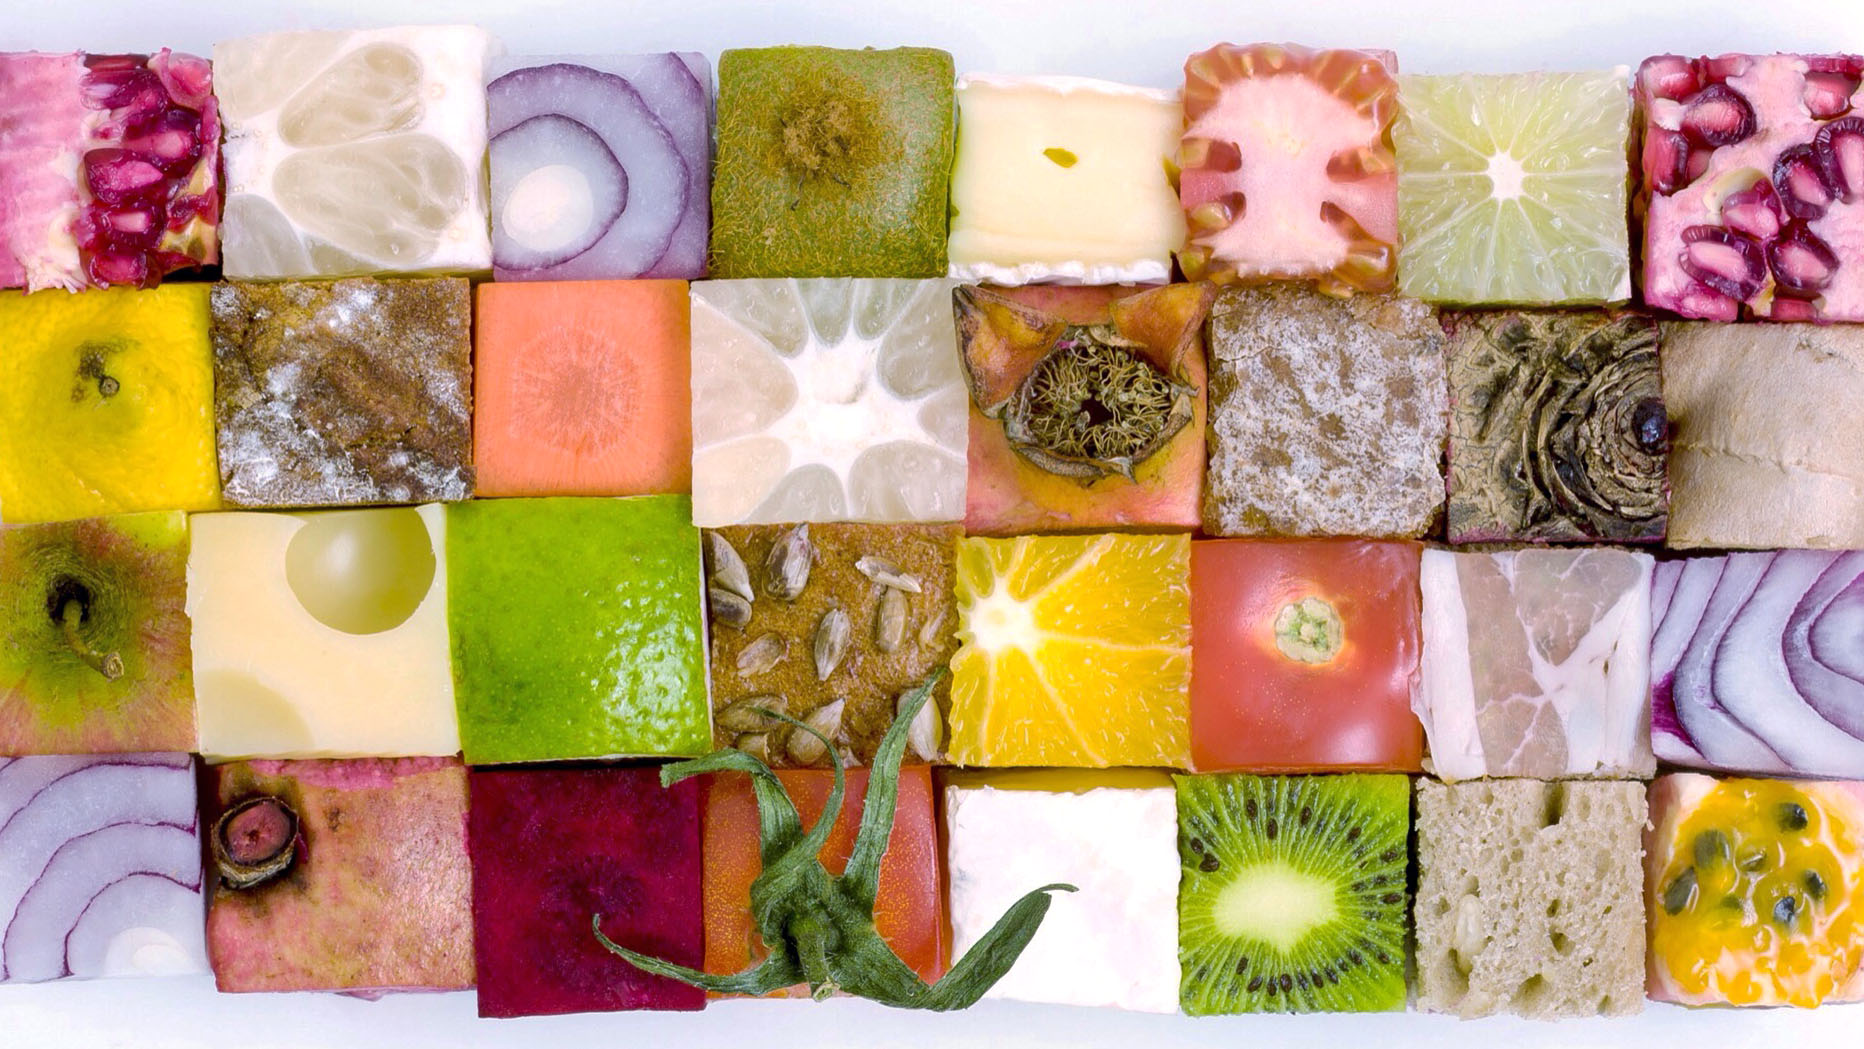 pieces of cheese, fruit and vegetables cut into squares and arranged in a checkerboard pattern